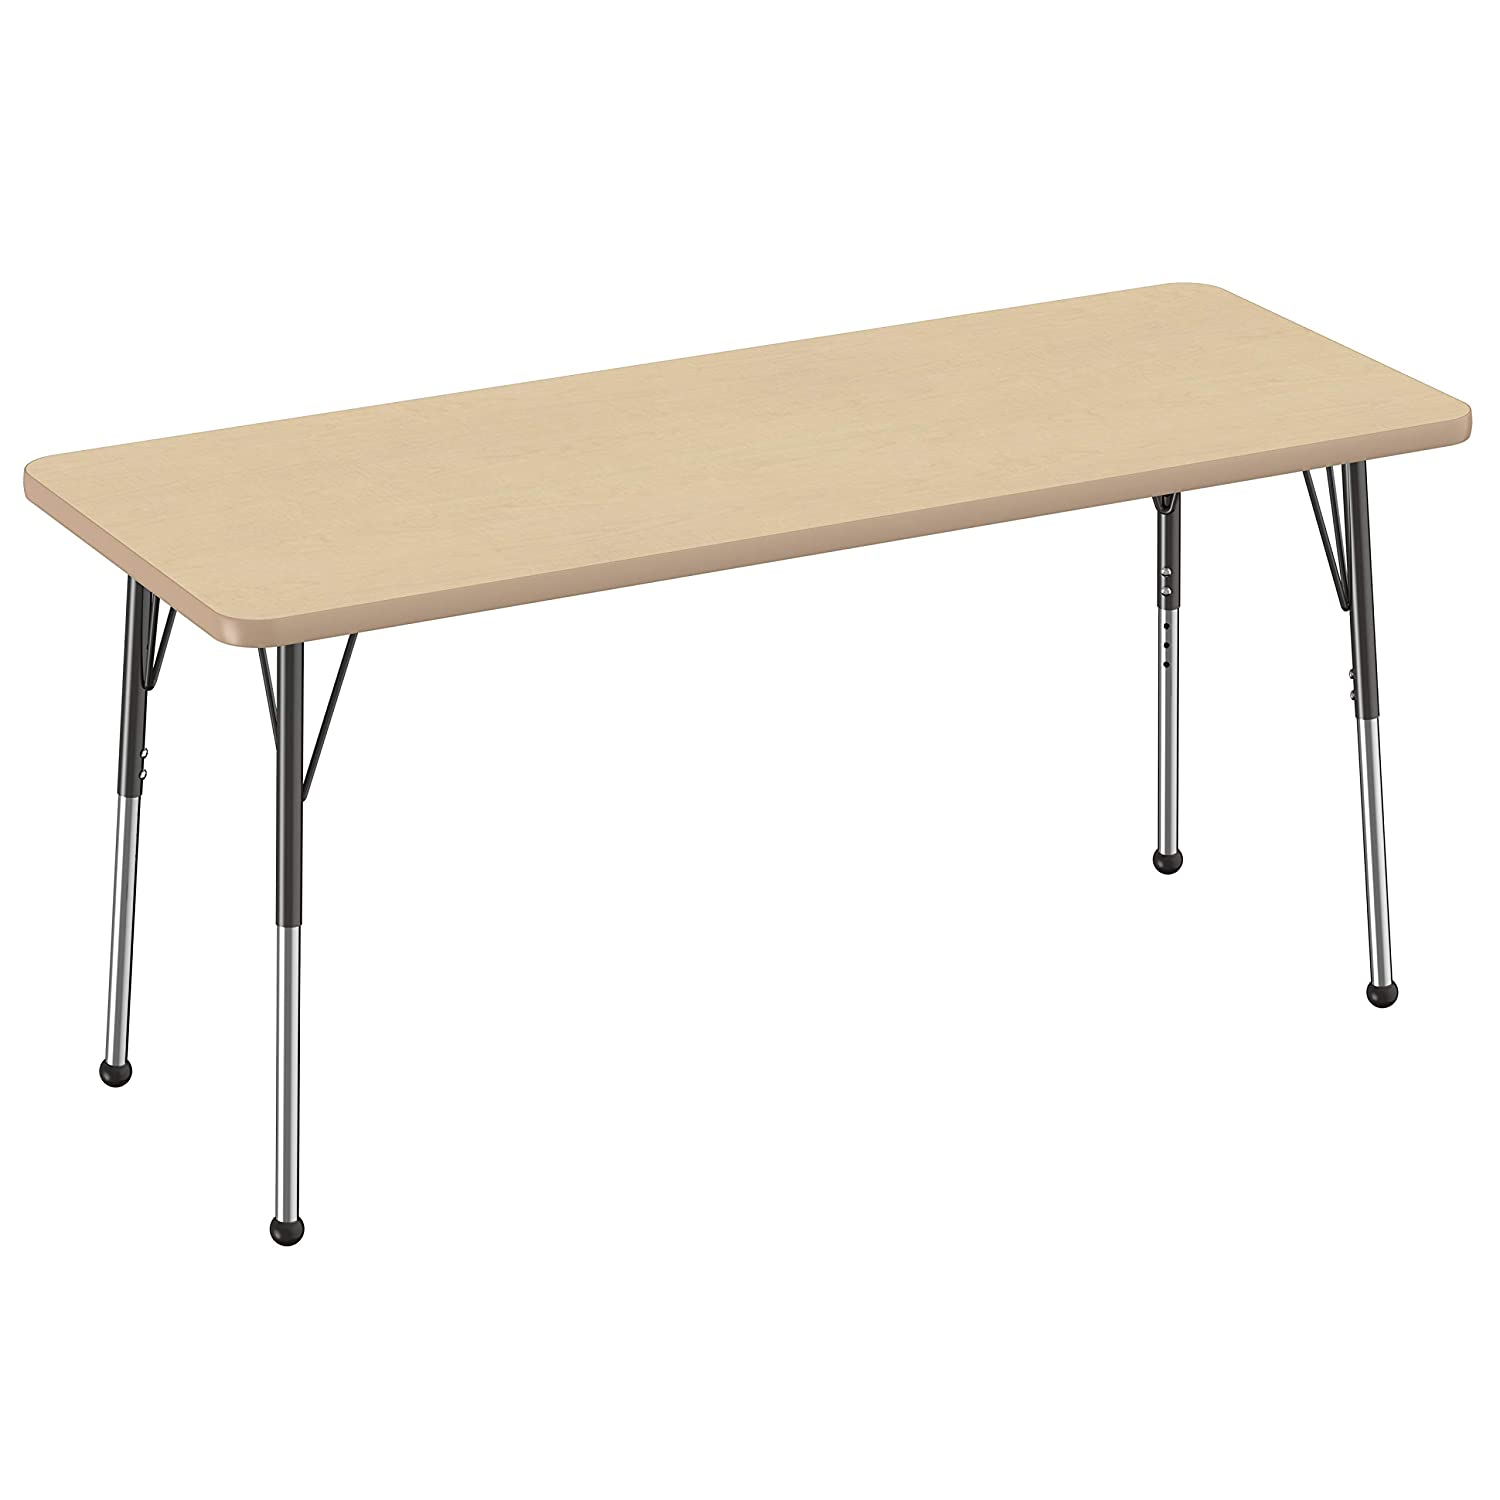 FDP Rectangle Activity Phoenix Mall School and Bombing new work Office 60 S x Table inch 24